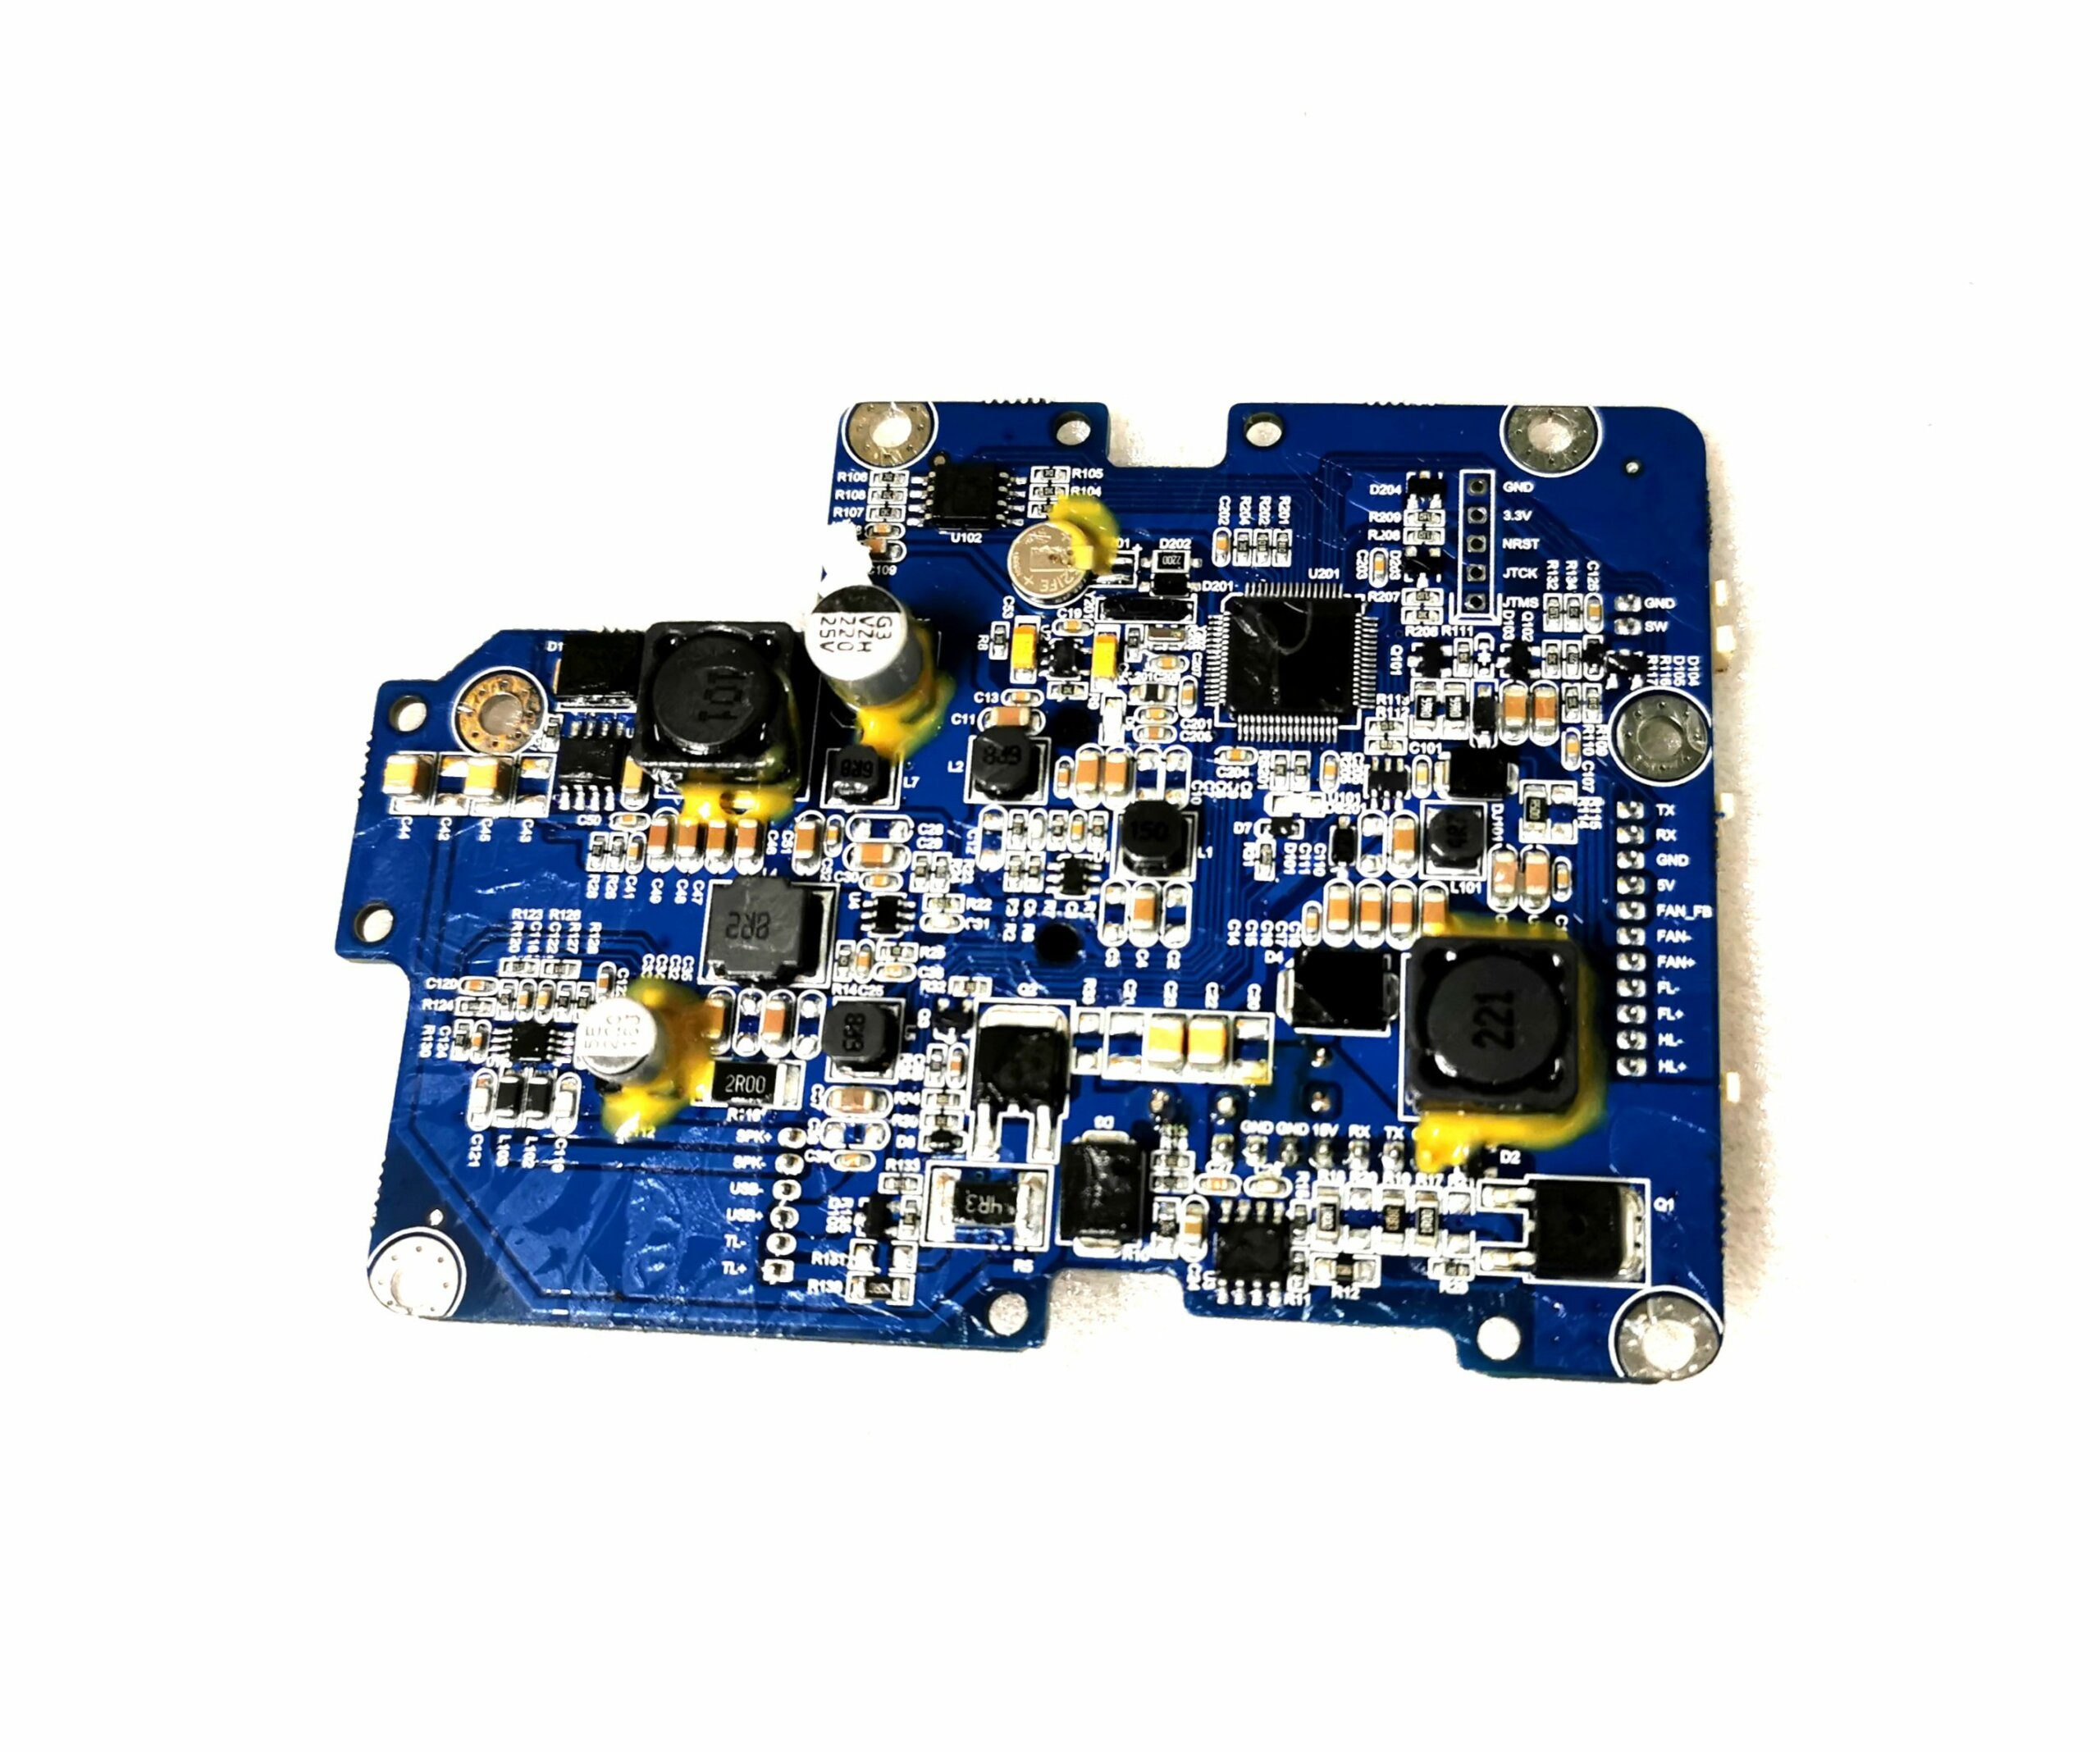 Inmotion_V11_electric_unicycle_control_board